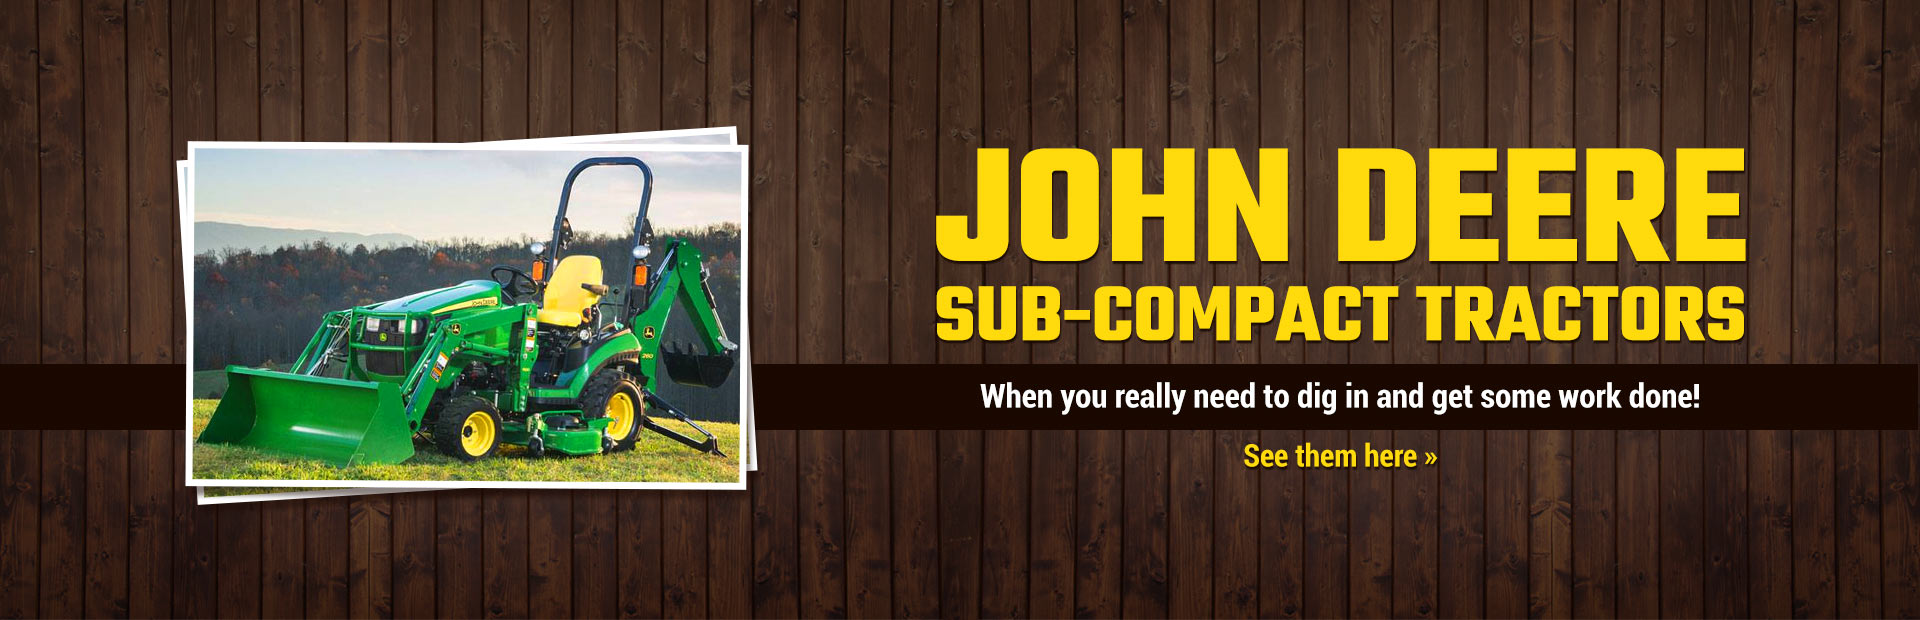 John Deere Sub-Compact Tractors: Click here to view the models.